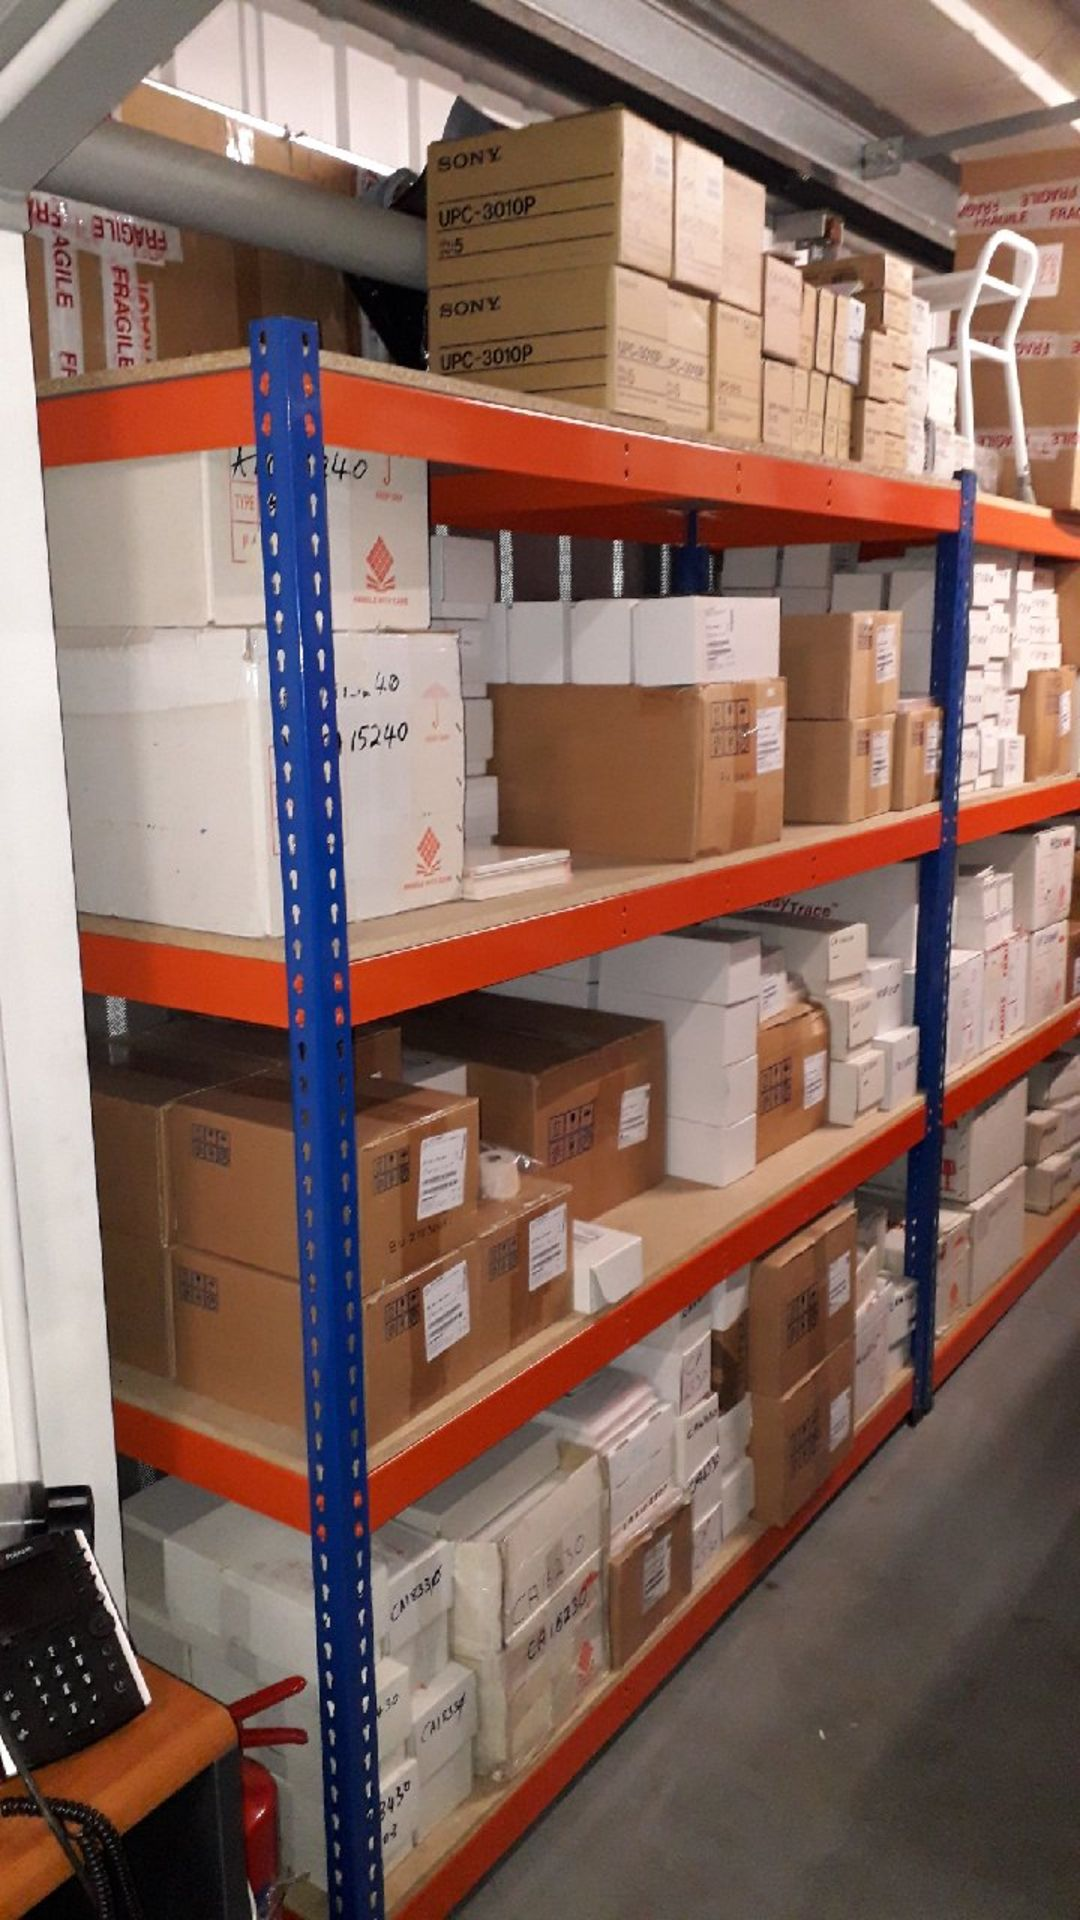 Stock of medical consumables and equipment to incl - Image 12 of 23